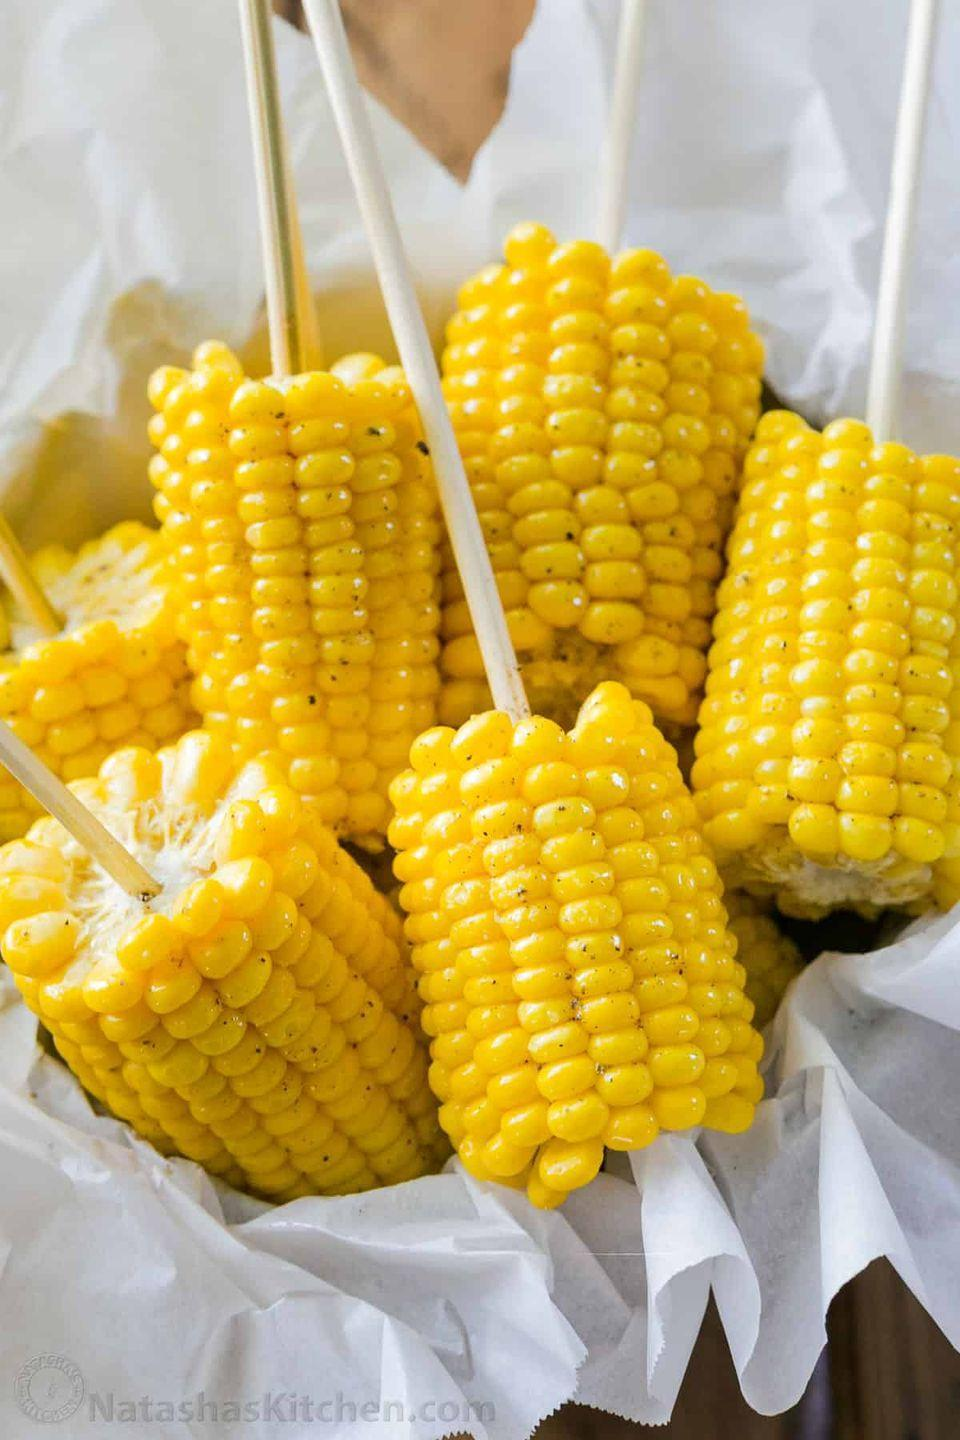 """<p>It doesn't get any easier than boiling corn. And here's a cool trick: Insert skewers into the cooked corn on the cob to make it easier to eat. </p><p><a href=""""https://natashaskitchen.com/15-minute-corn-on-the-cob/"""" rel=""""nofollow noopener"""" target=""""_blank"""" data-ylk=""""slk:Get the recipe."""" class=""""link rapid-noclick-resp"""">Get the recipe. </a></p>"""